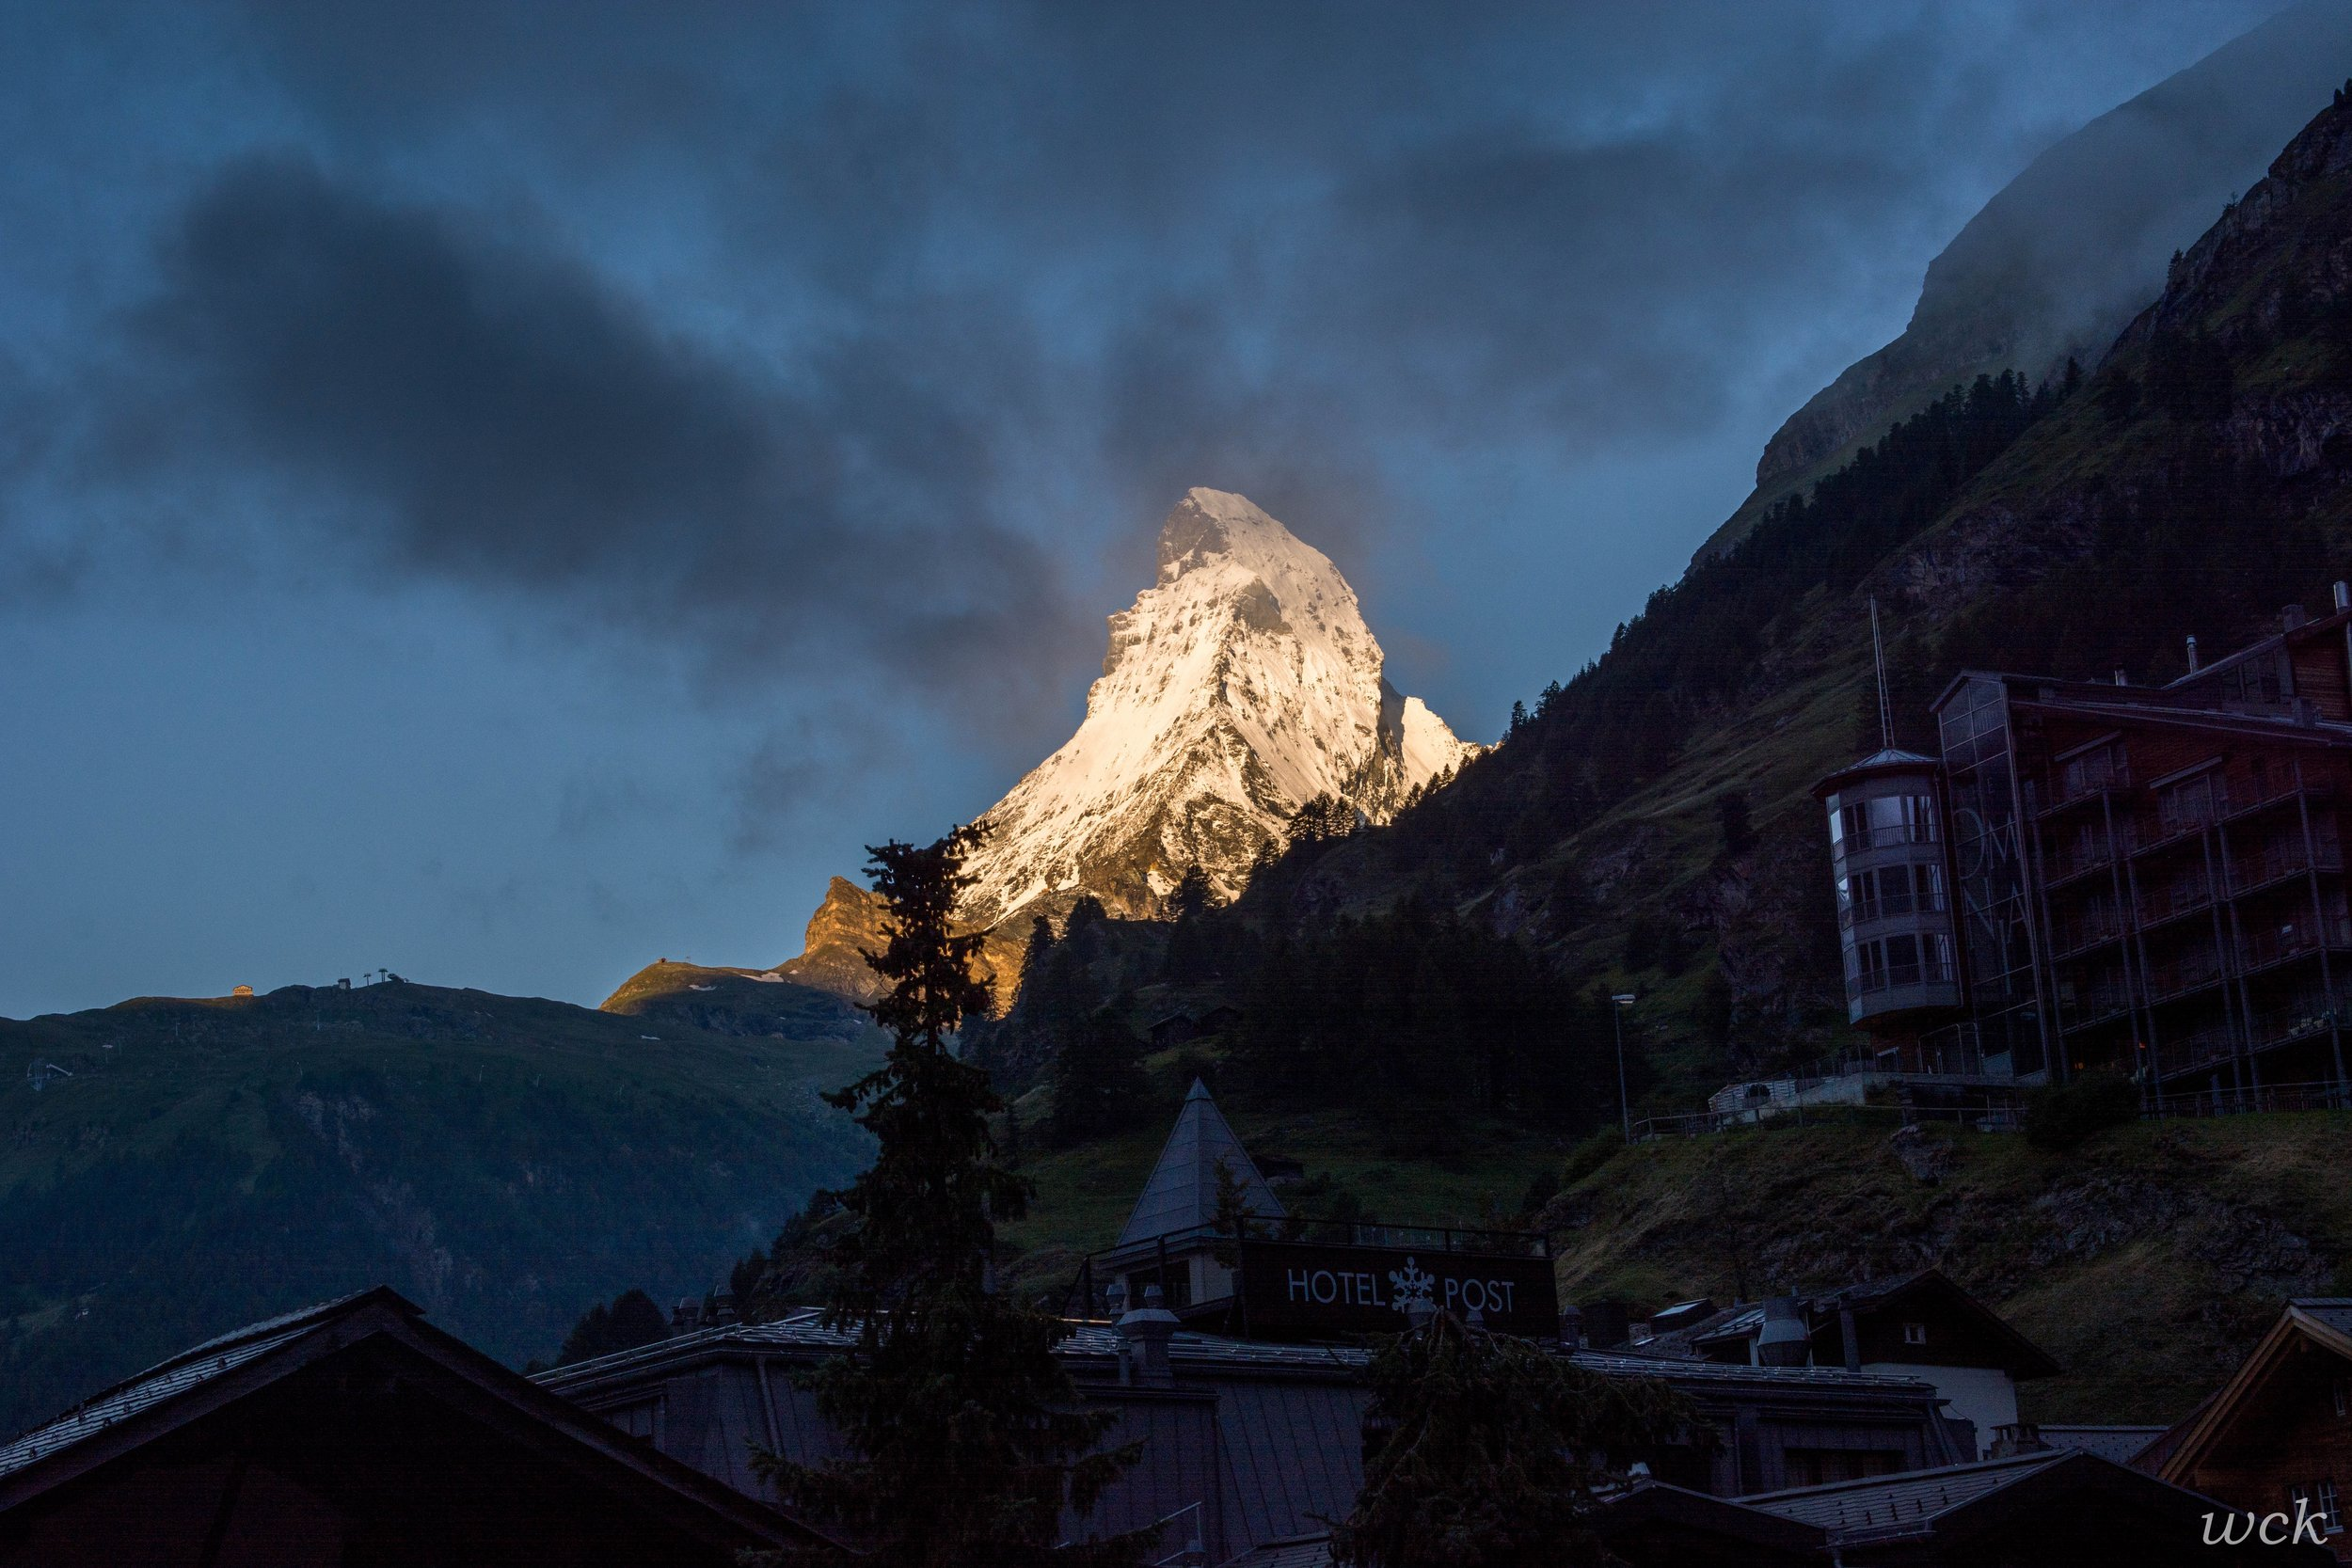 A dream come true to see this!  The Matterhorn!